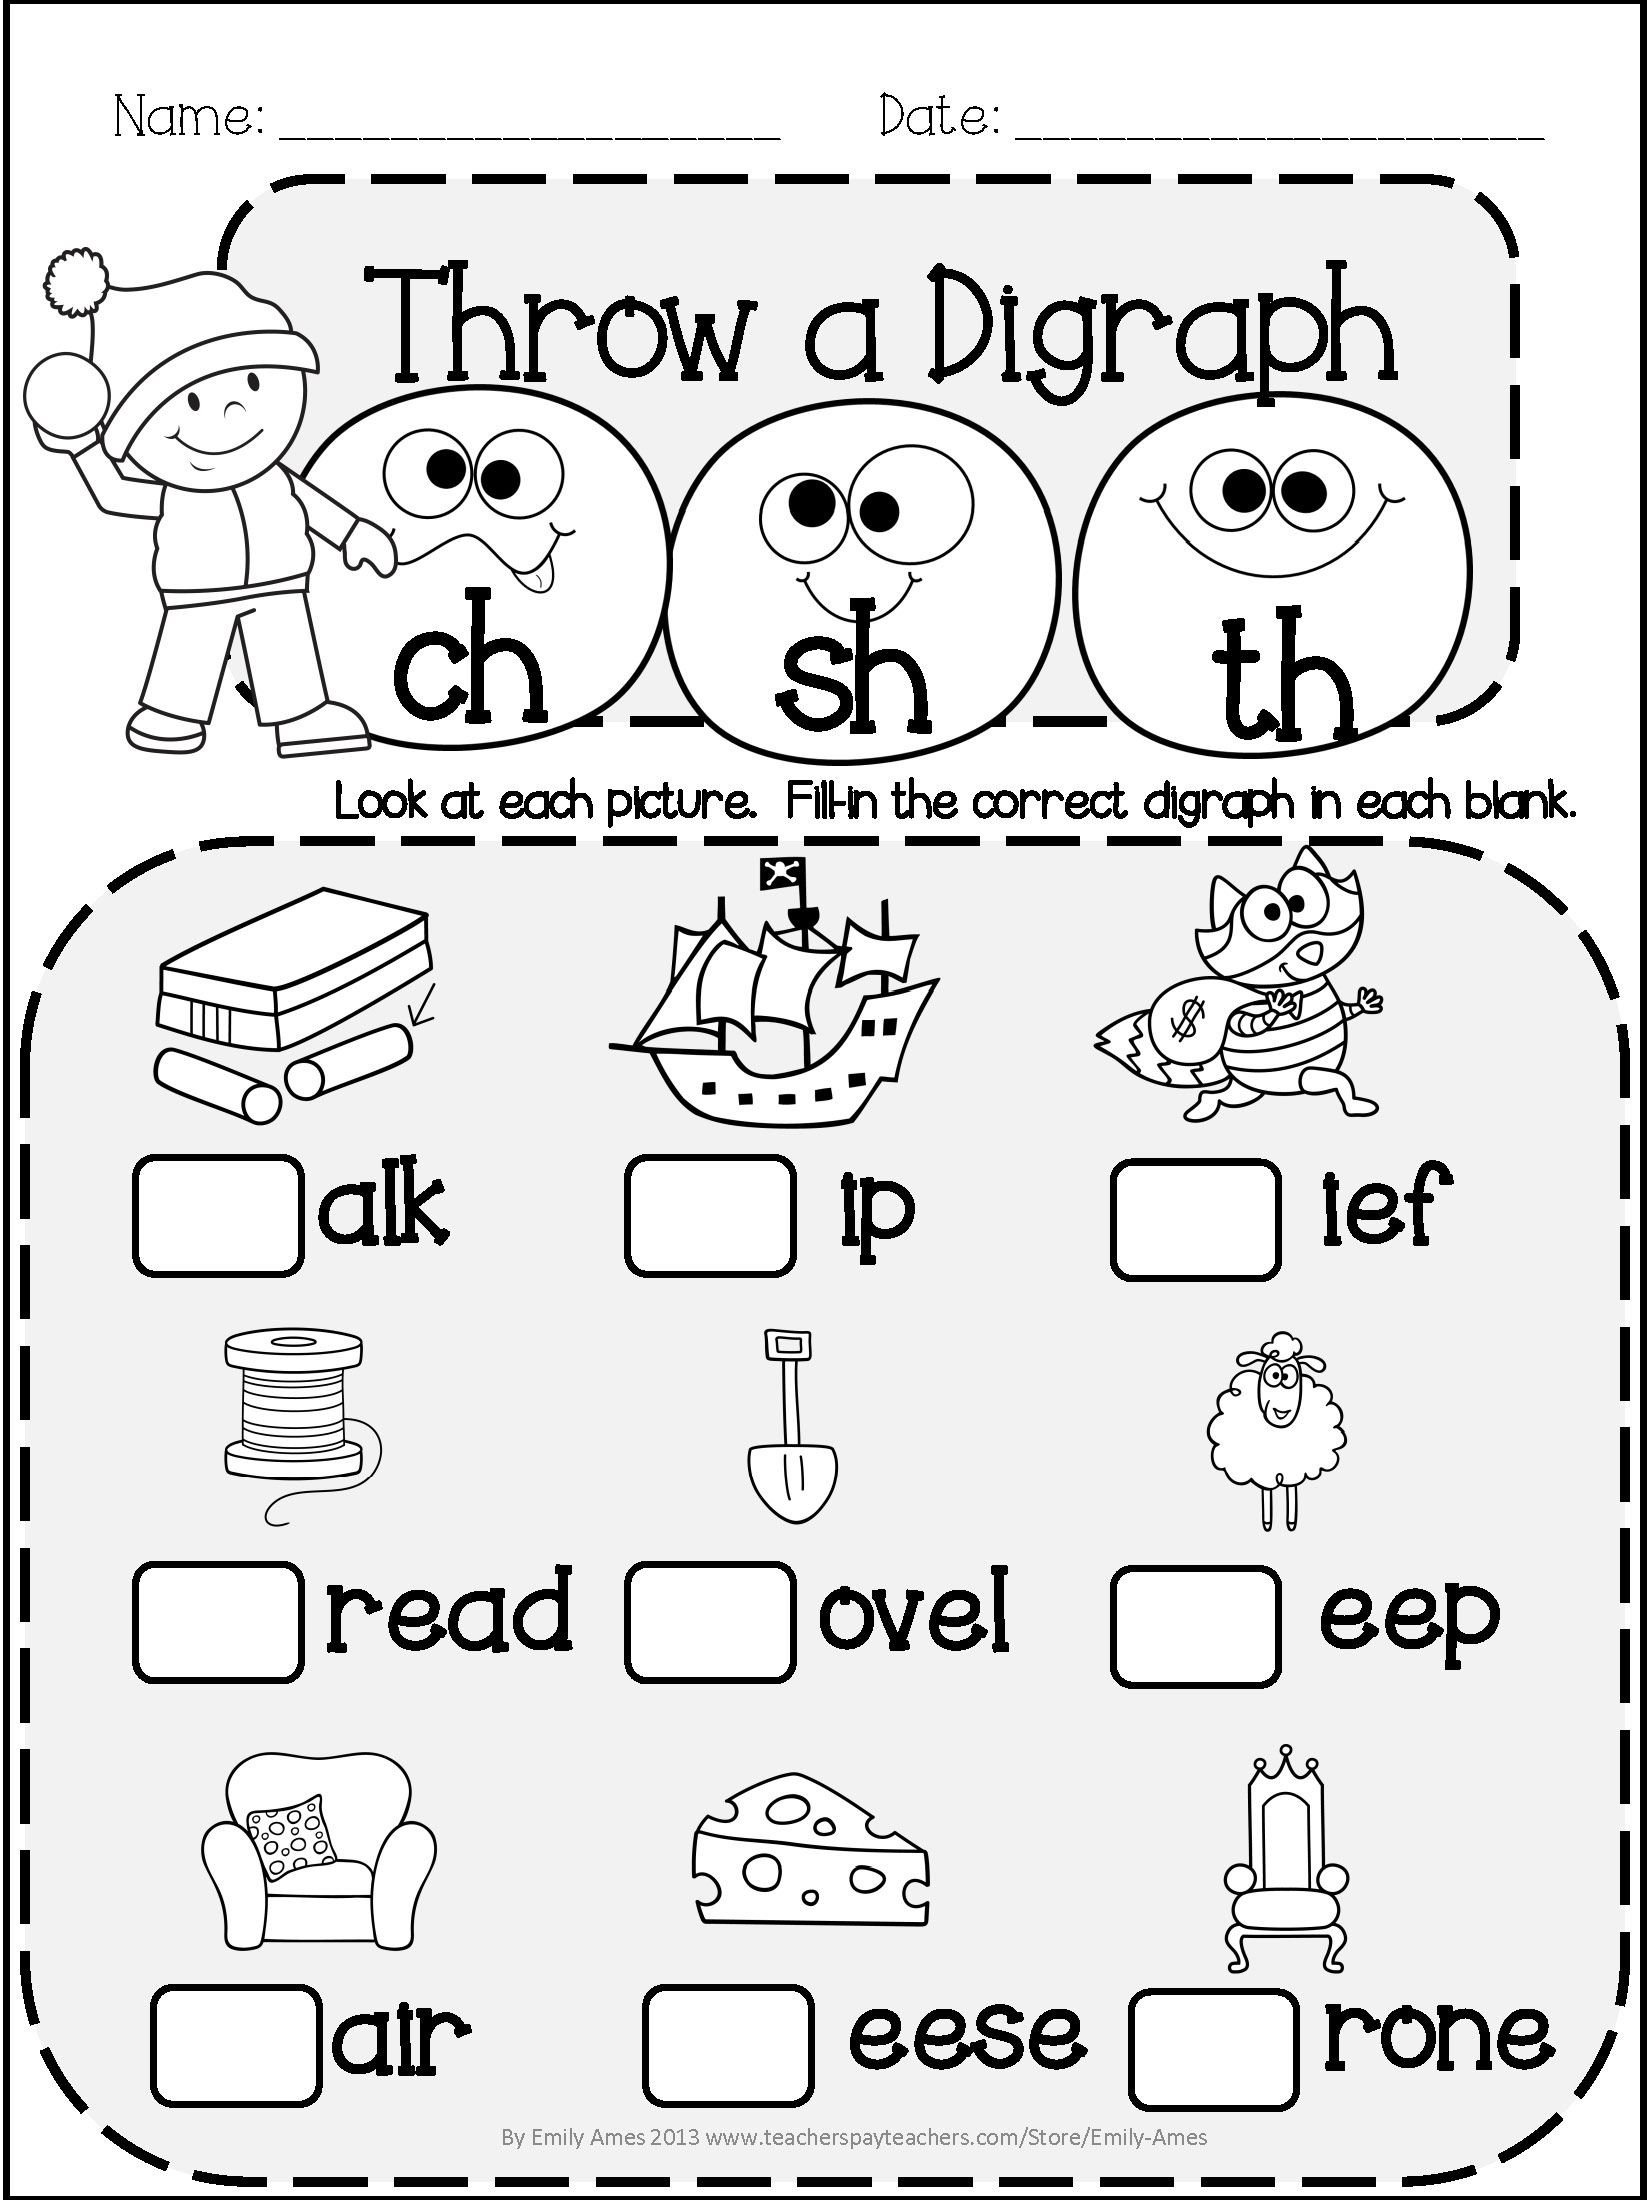 Digraph Worksheets for First Grade Pin by Jennifer Hout On Primary Materials From Tpt